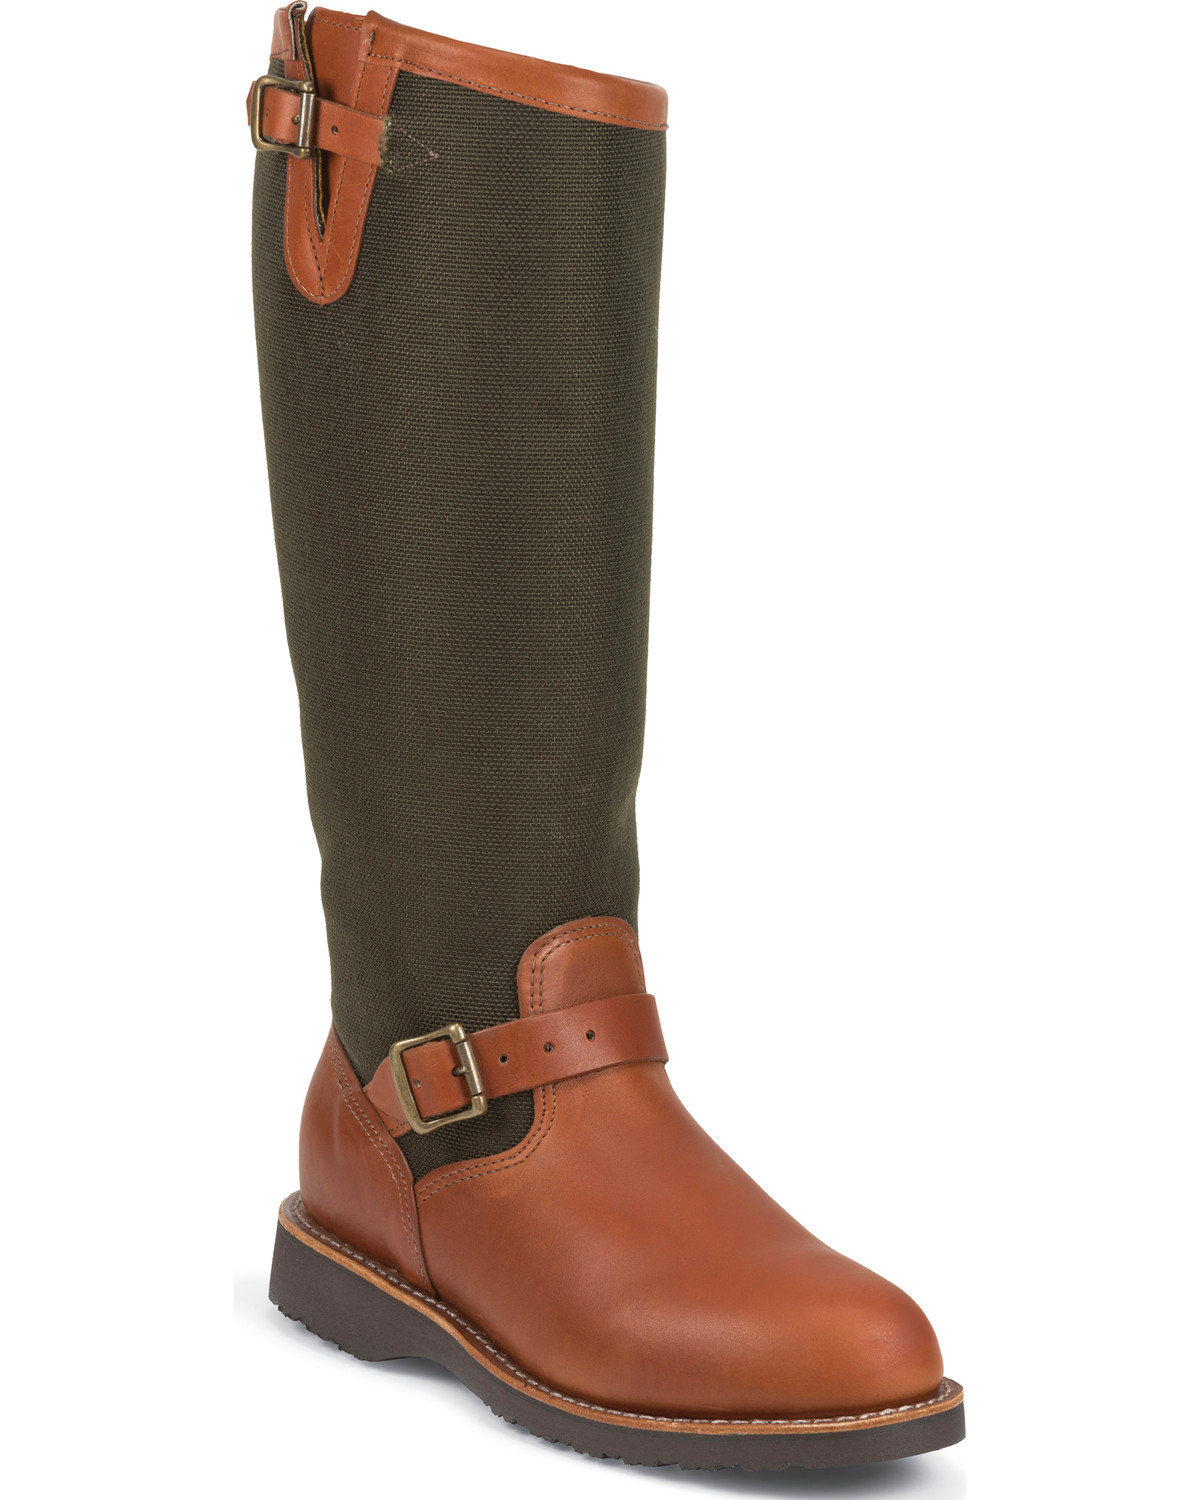 ll find most inmyelement season the pin womens chelsea you comfortable boots timberland this comforter boot